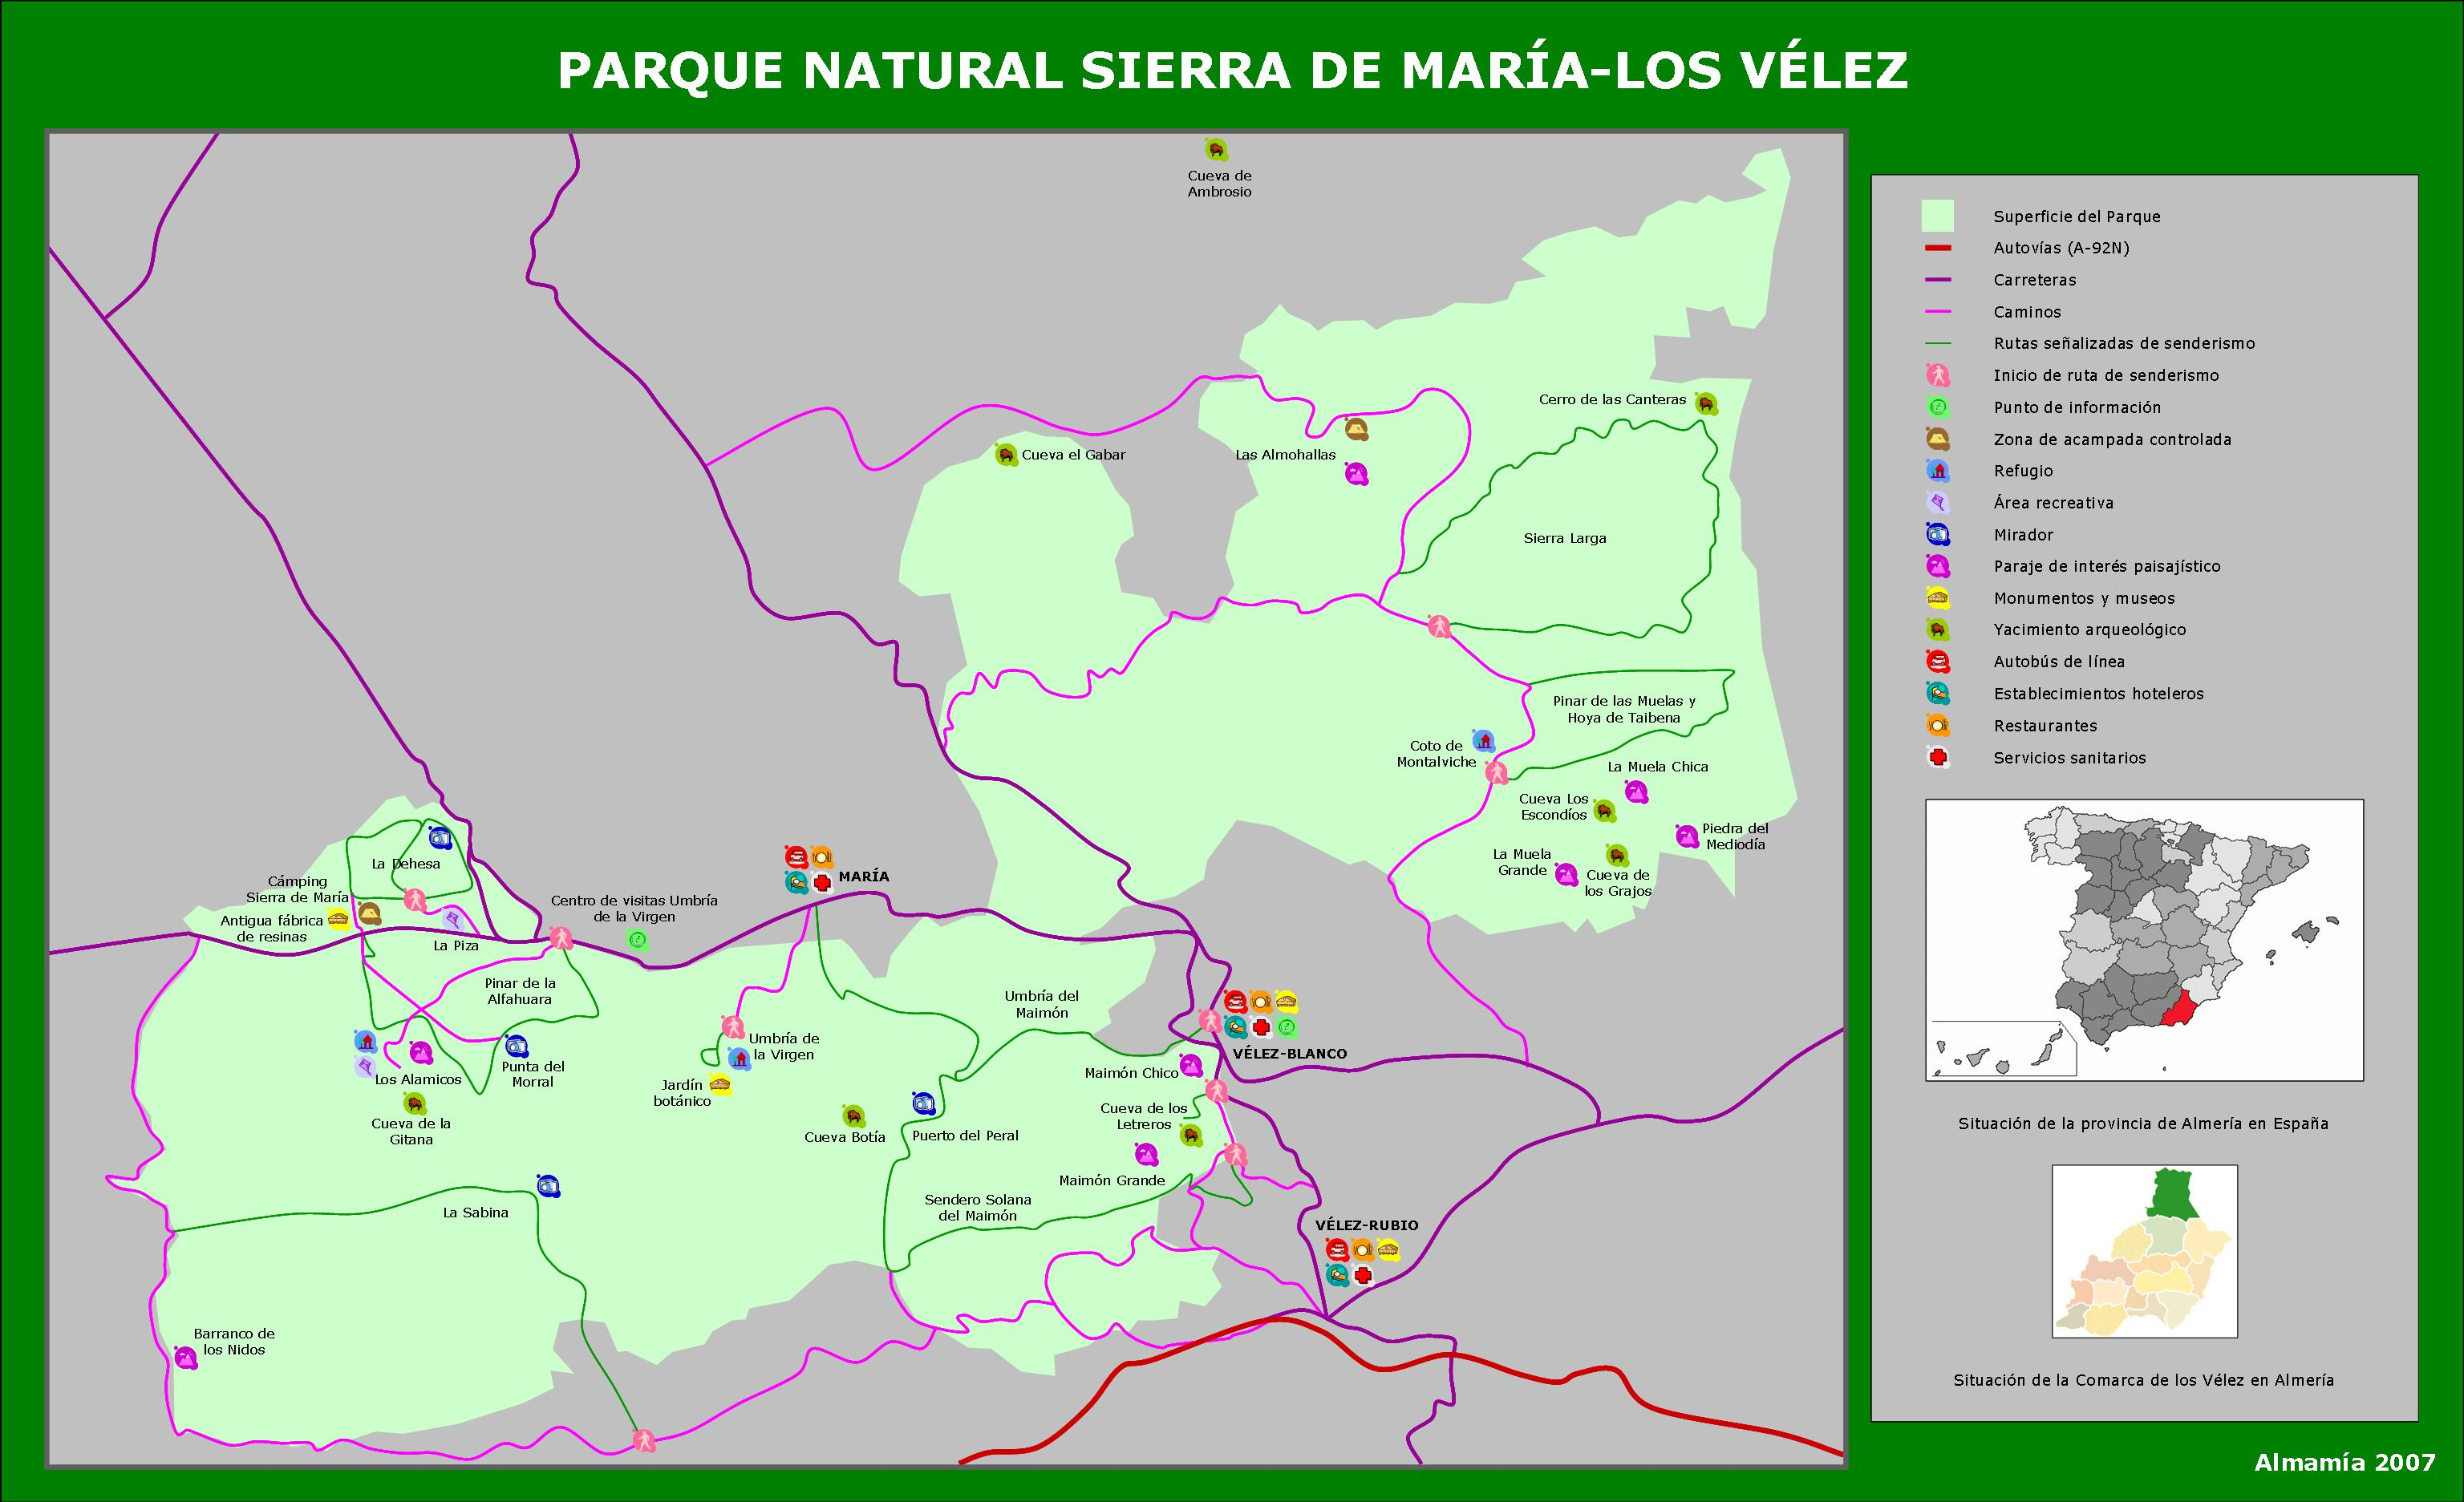 Map of Sierra de María-Los Vélez Natural Park 2007